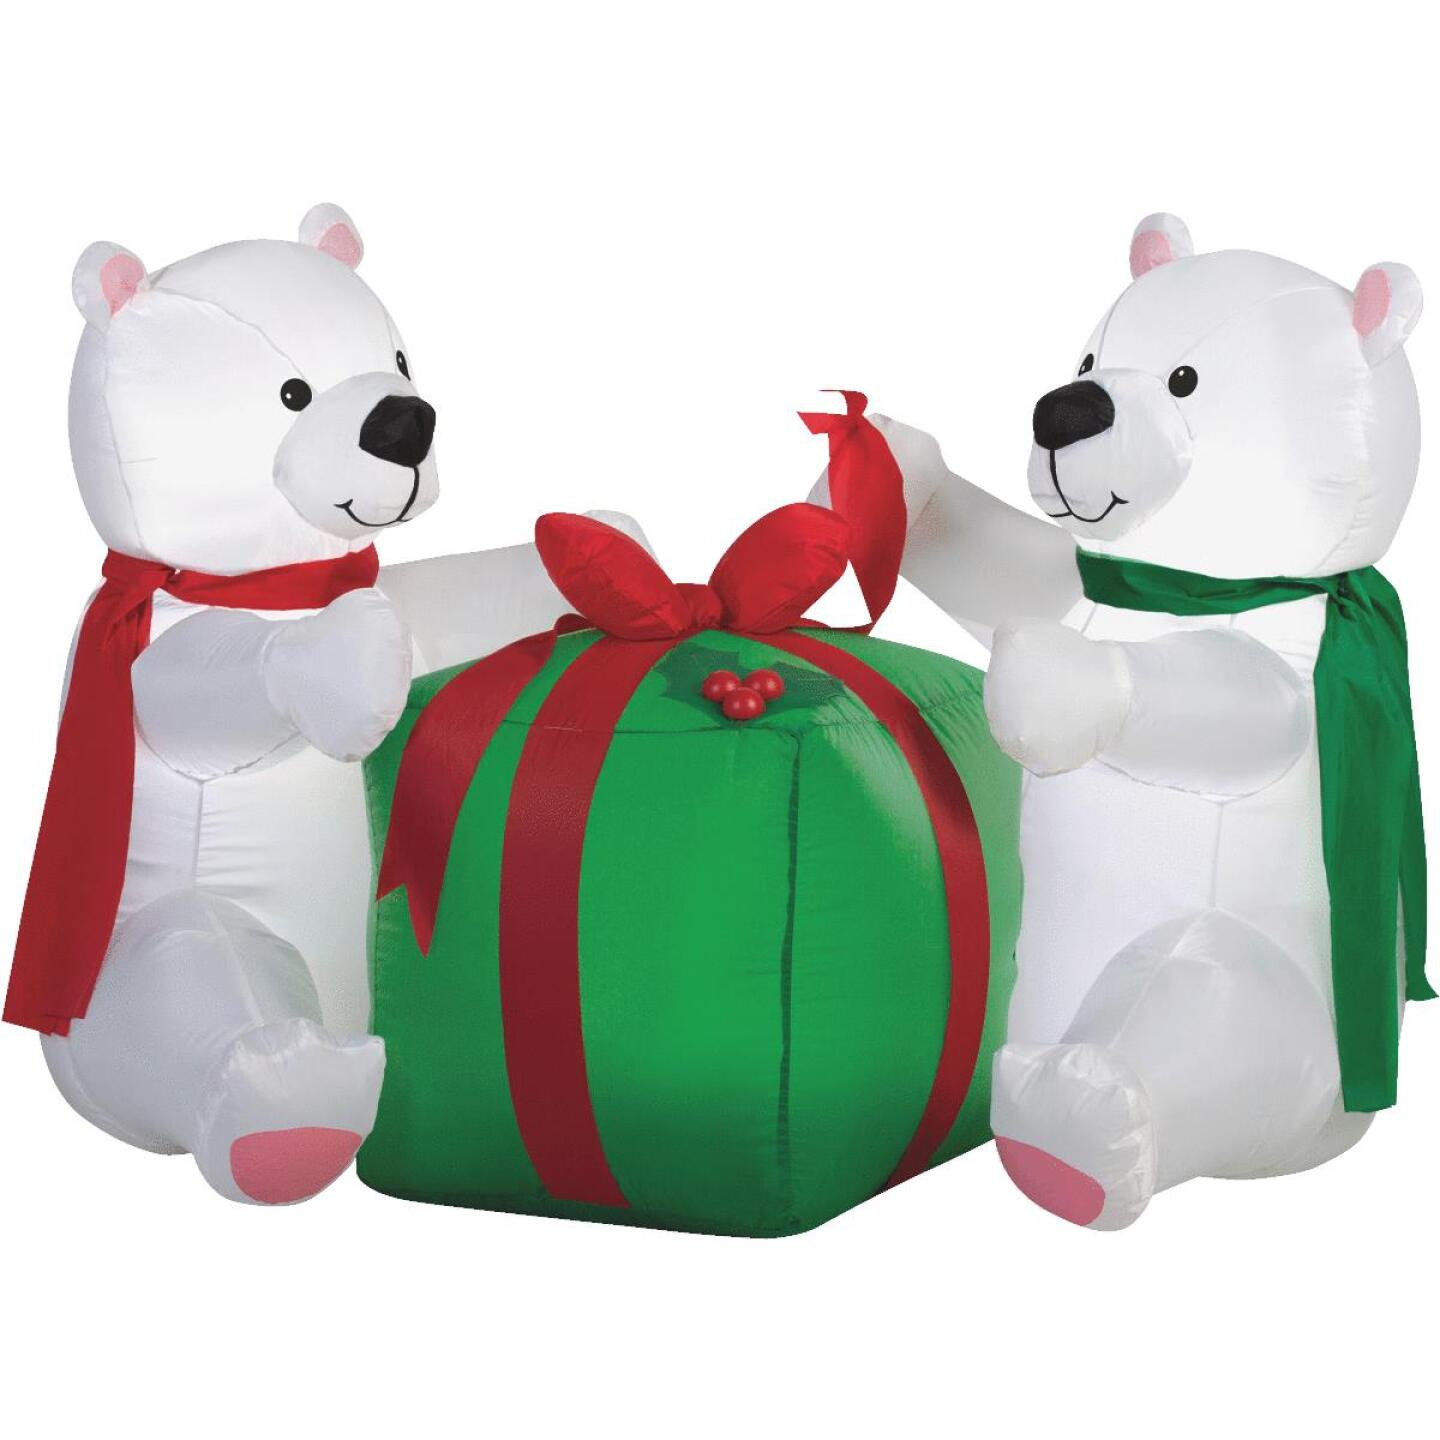 Gemmy 48 In. W. x 34.6 In. H. Airblown Inflatable Polar Bear Cubs Image 1